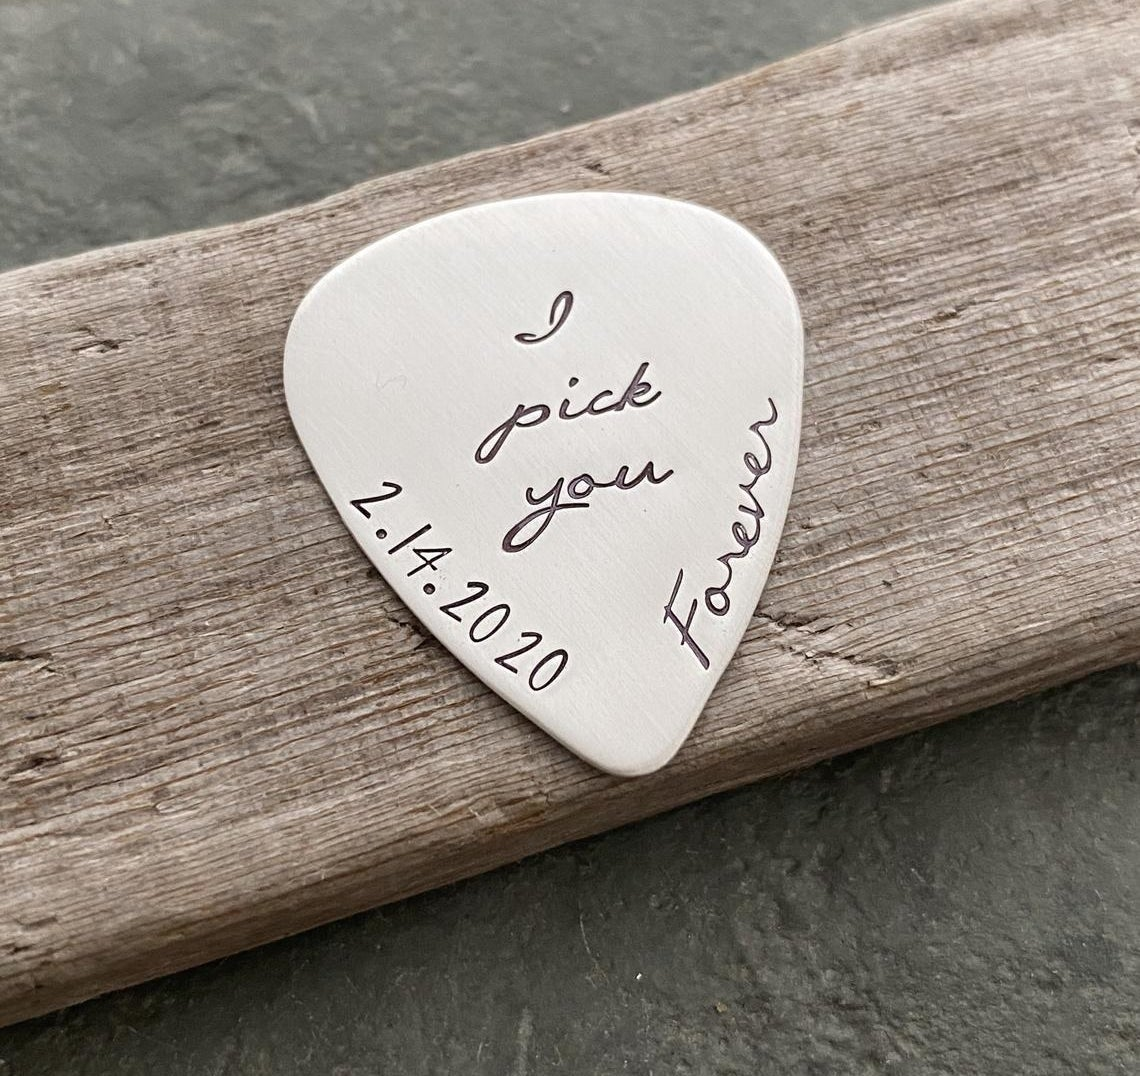 A silver pick with I pick you and 2-14-2020 forever engraved onto it